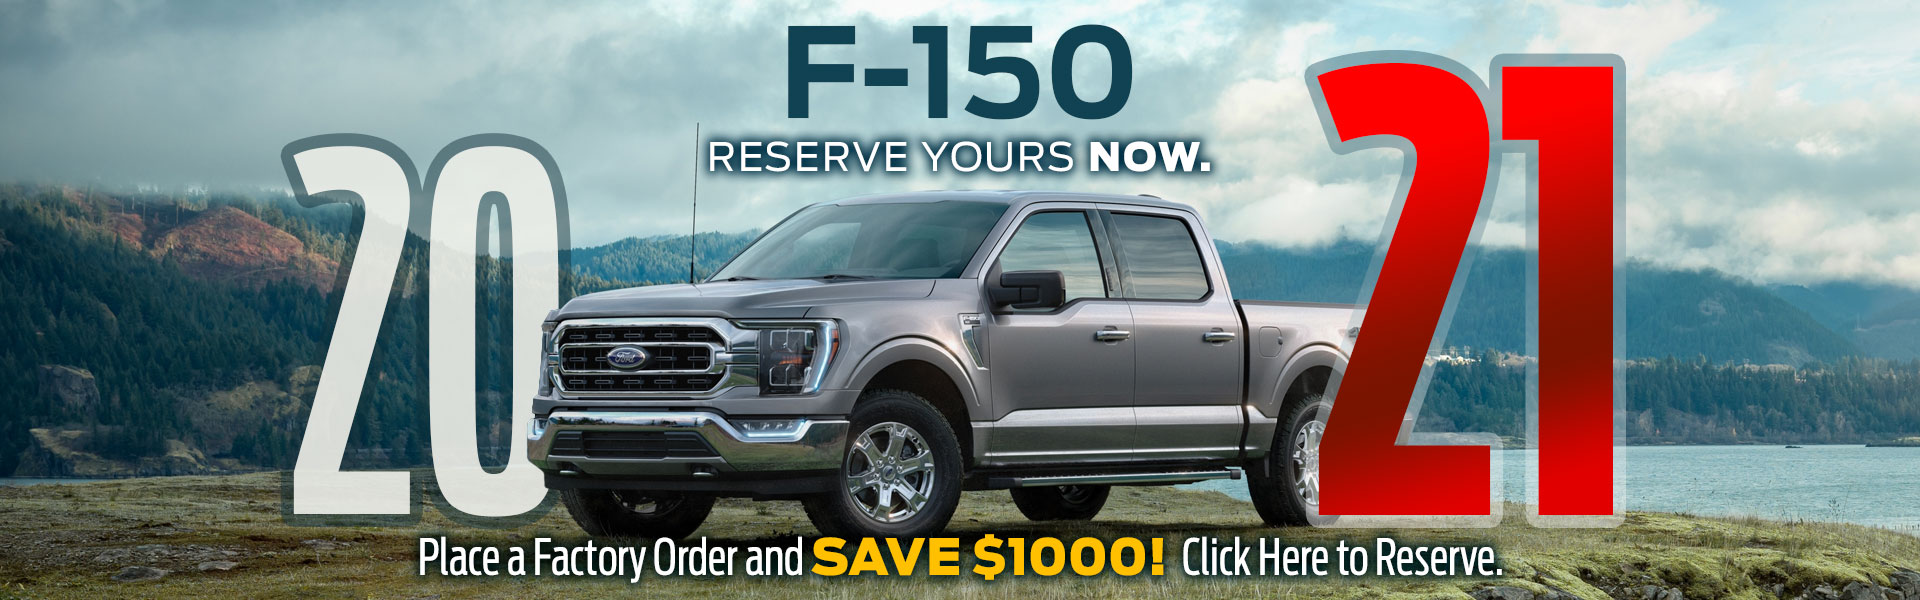 Reserve a 2021 Ford F-150 in Edmonton Today!